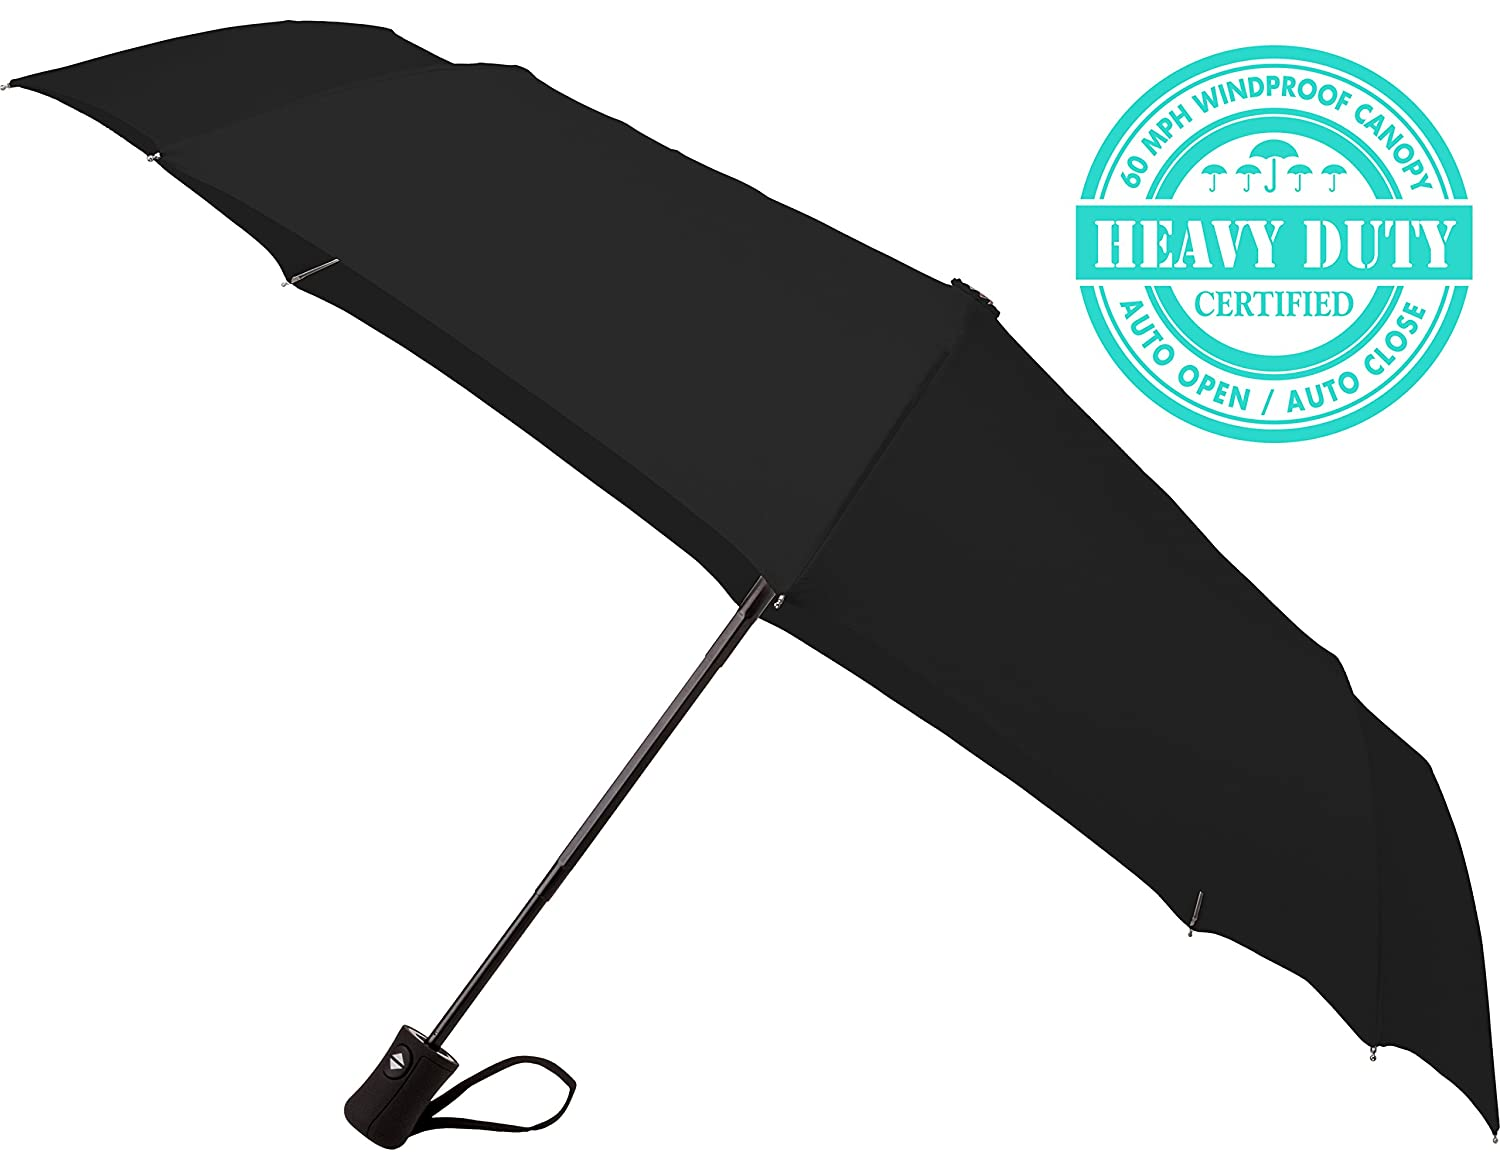 "60 MPH Windproof Umbrellas Various Colors ""Guaranteed Lifetime Replacement Program"" Auto Close Auto Open Compact Travel Umbrella Doesn"